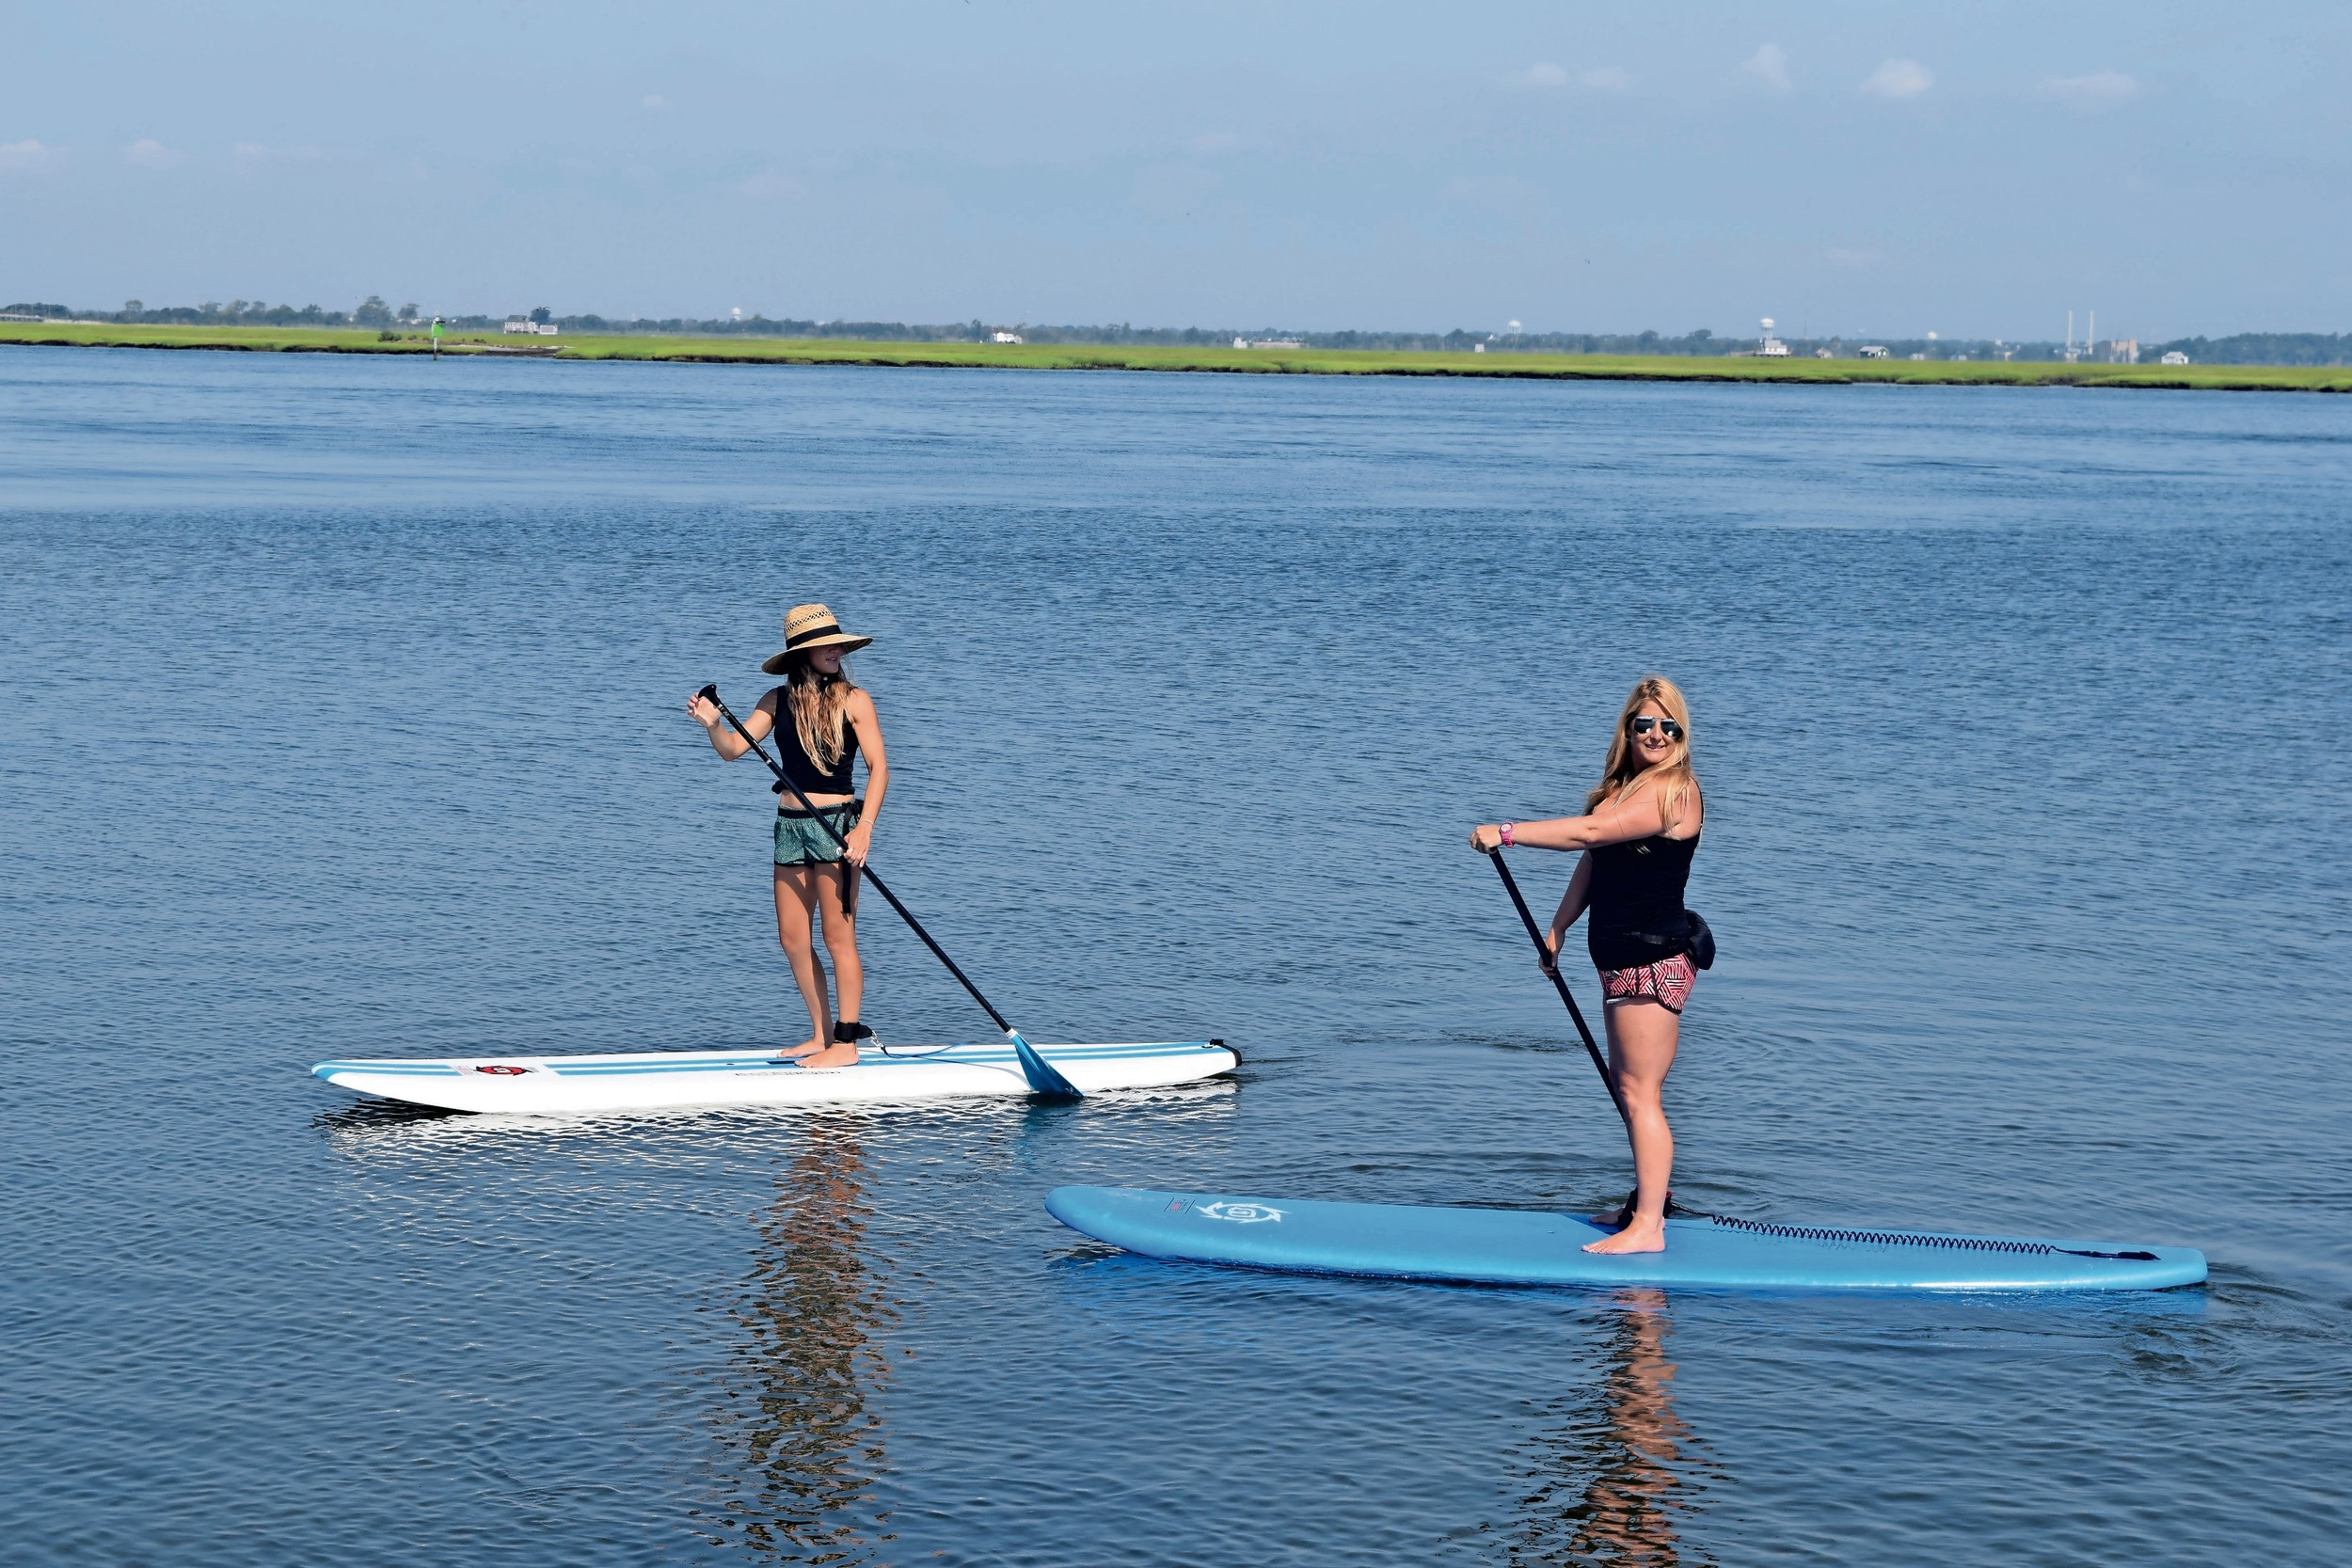 Jennifer Hanono, left, and Nicole Glasser paddled out at Jones Beach Field 10 to practice yoga.